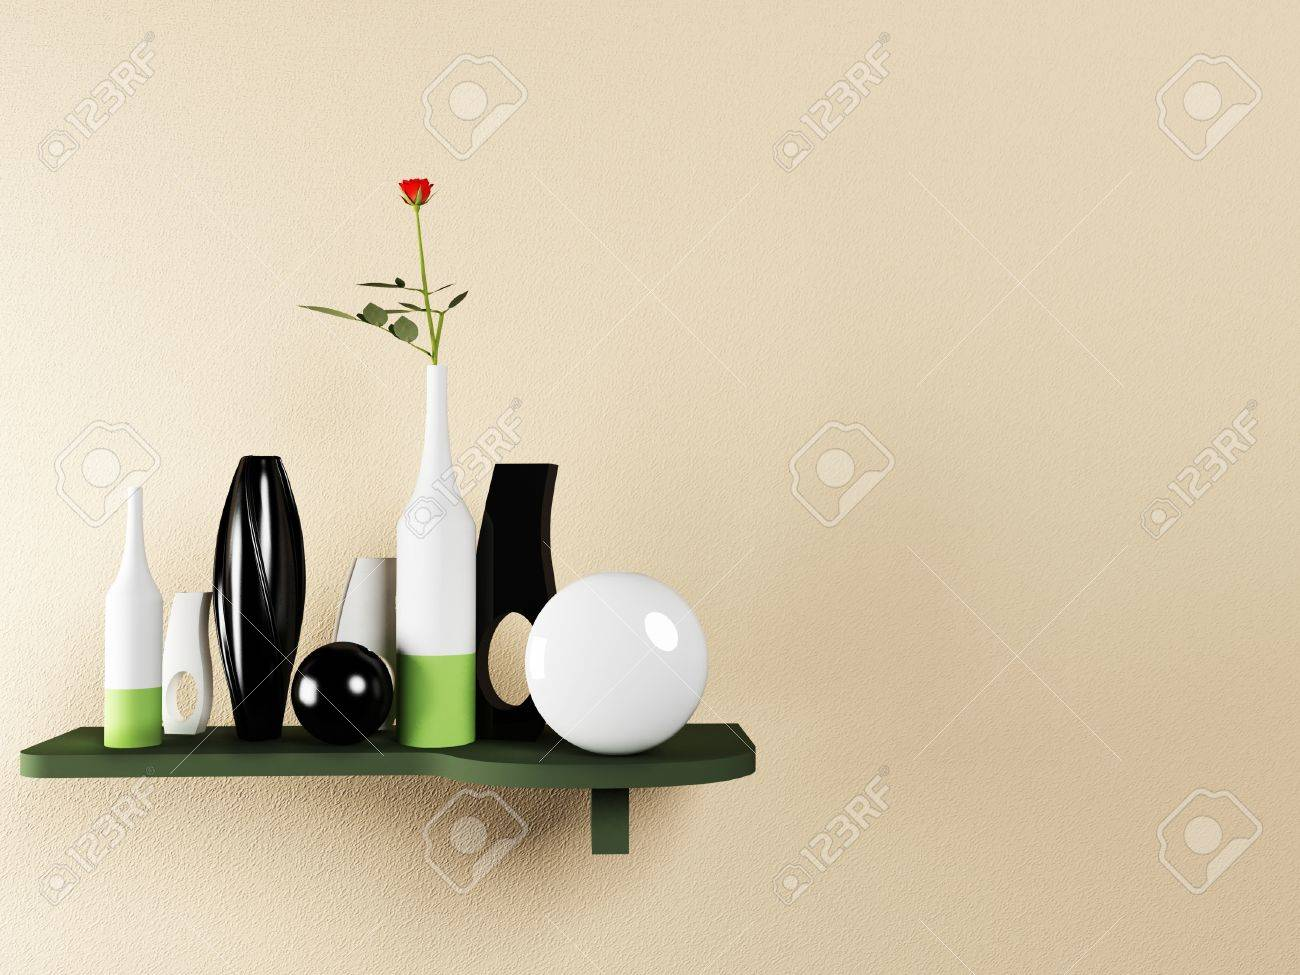 Creative Shelf Creative Shelf On The Wall With The Vases Stock Photo Picture And